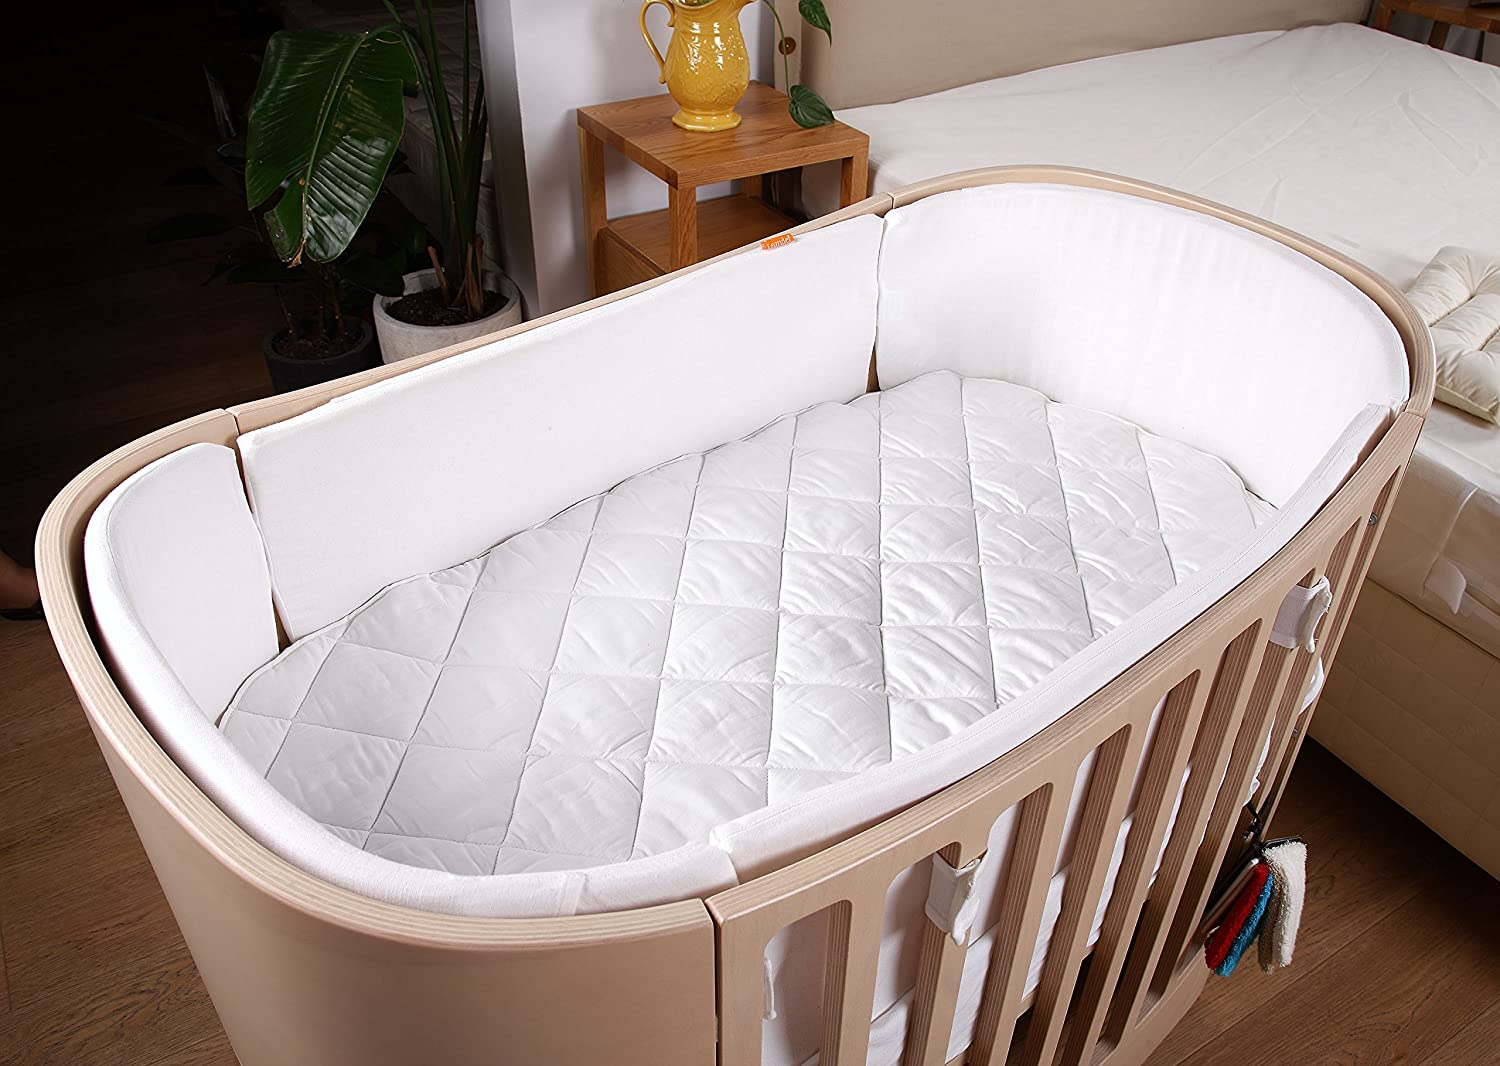 DUDU N GIRLIE Moses Basket Luxury Quilted Waterproof Mattress Protector Fitted Mattress Protector's. Dudu N Girlie ltd